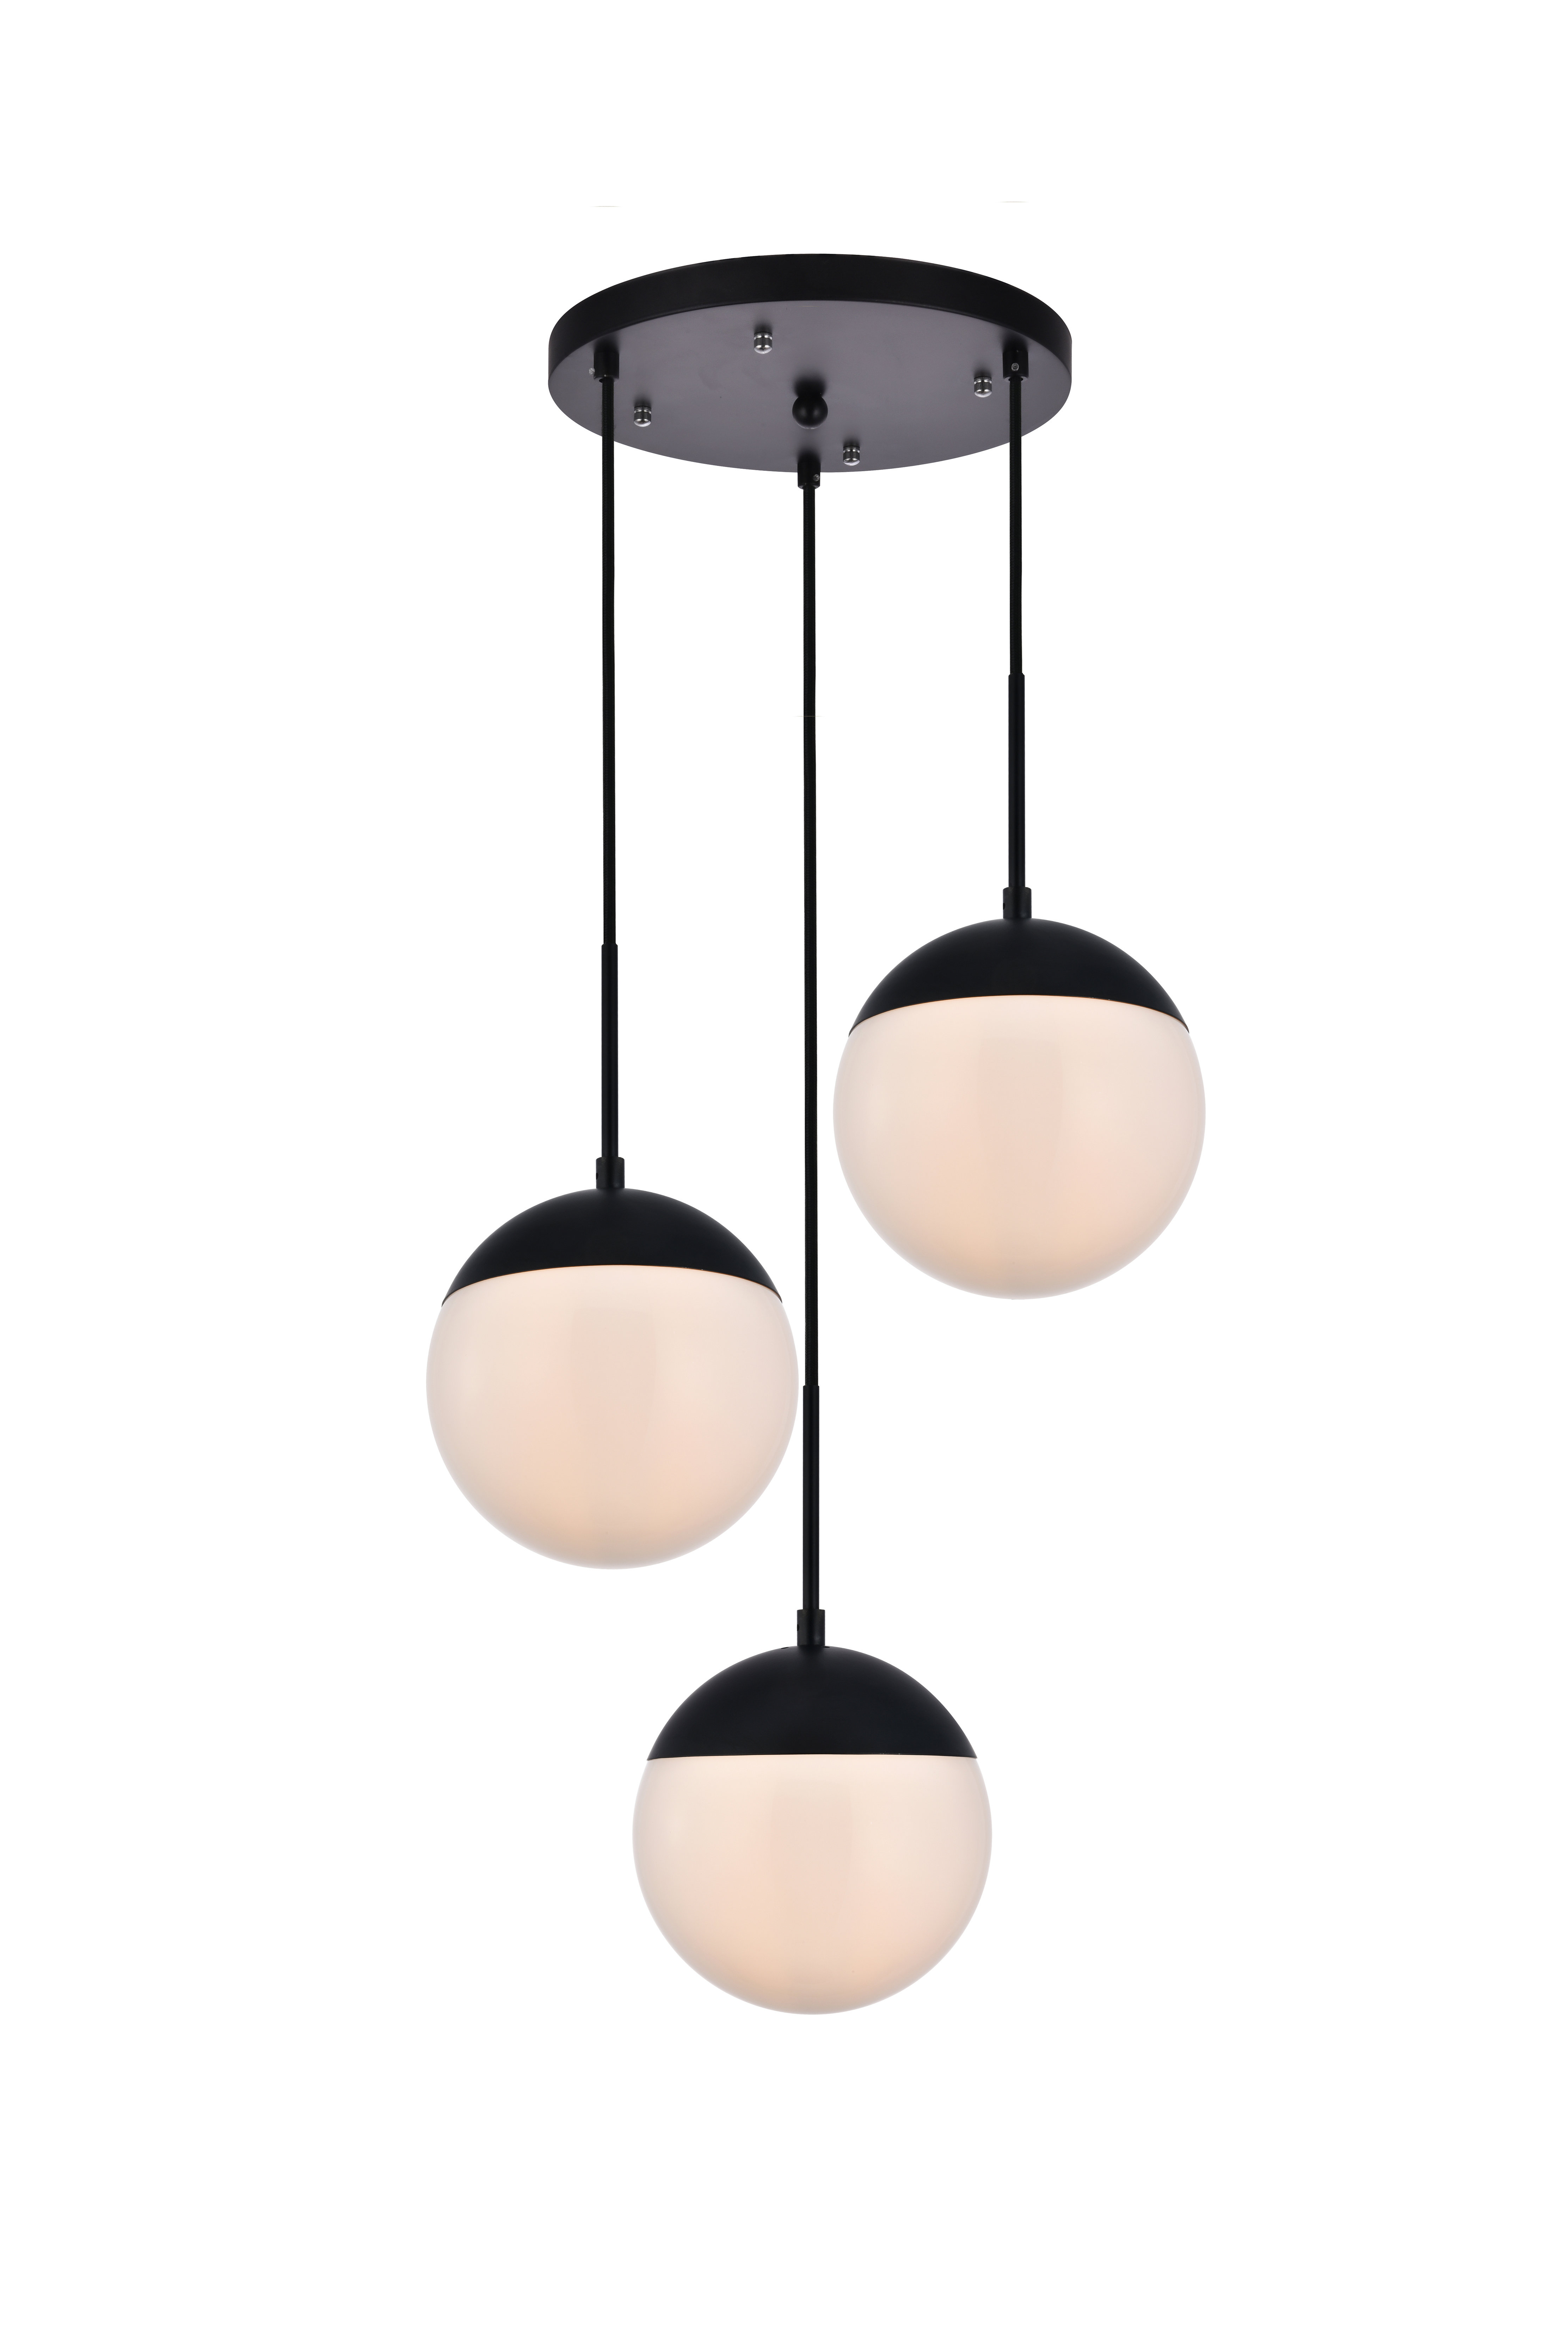 Yearby 3-Light Cluster Globe Pendant with regard to Berenice 3-Light Cluster Teardrop Pendants (Image 30 of 30)